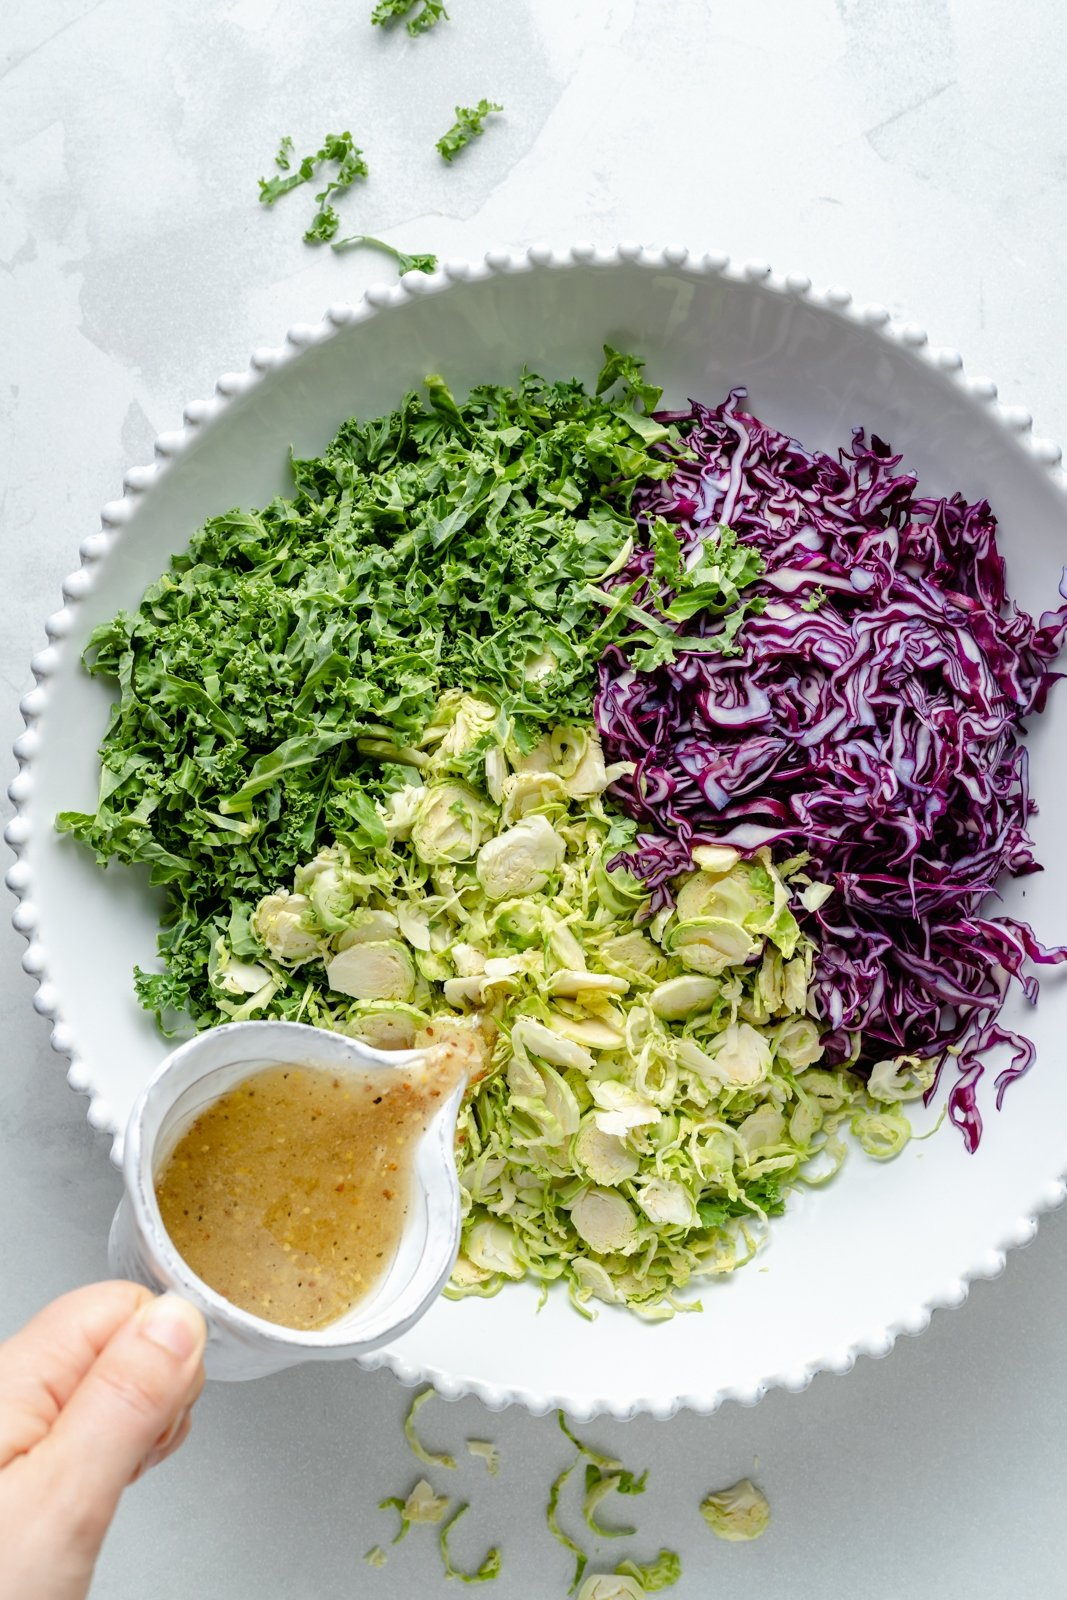 pouring maple cider dressing into a bowl of brussels sprouts, kale and cabbage